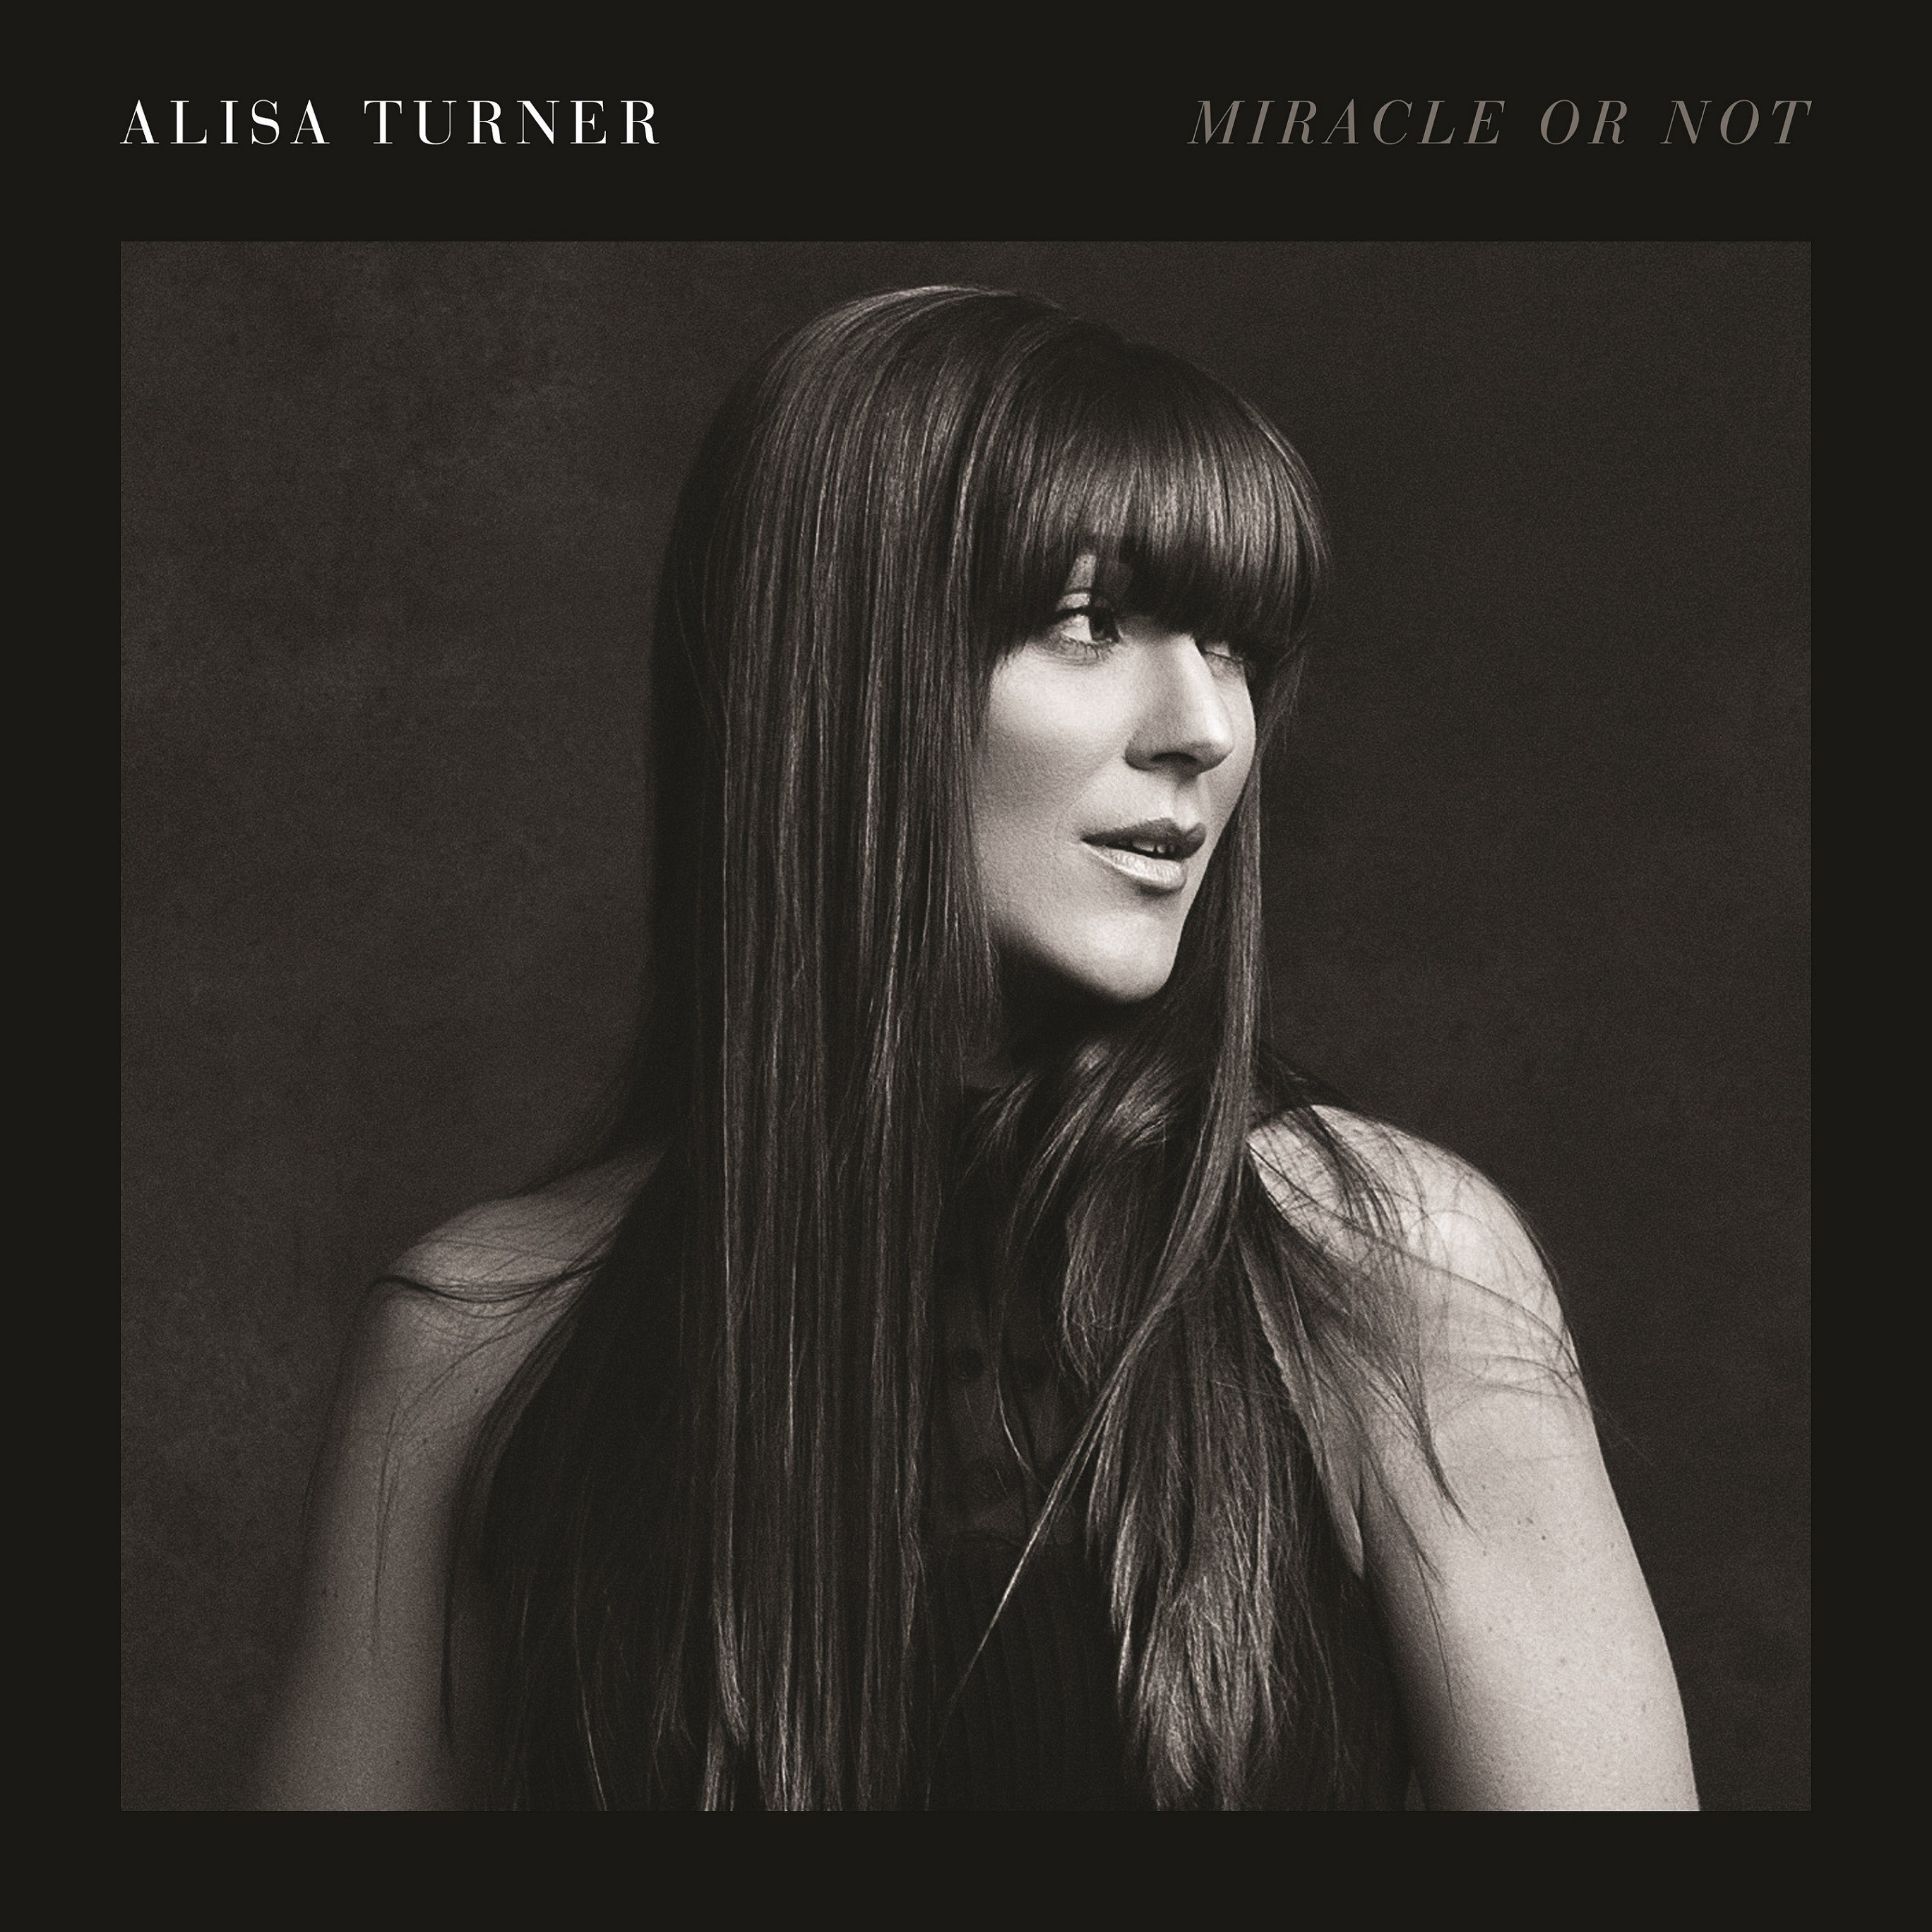 Alisa Turner - Miracle Or Not